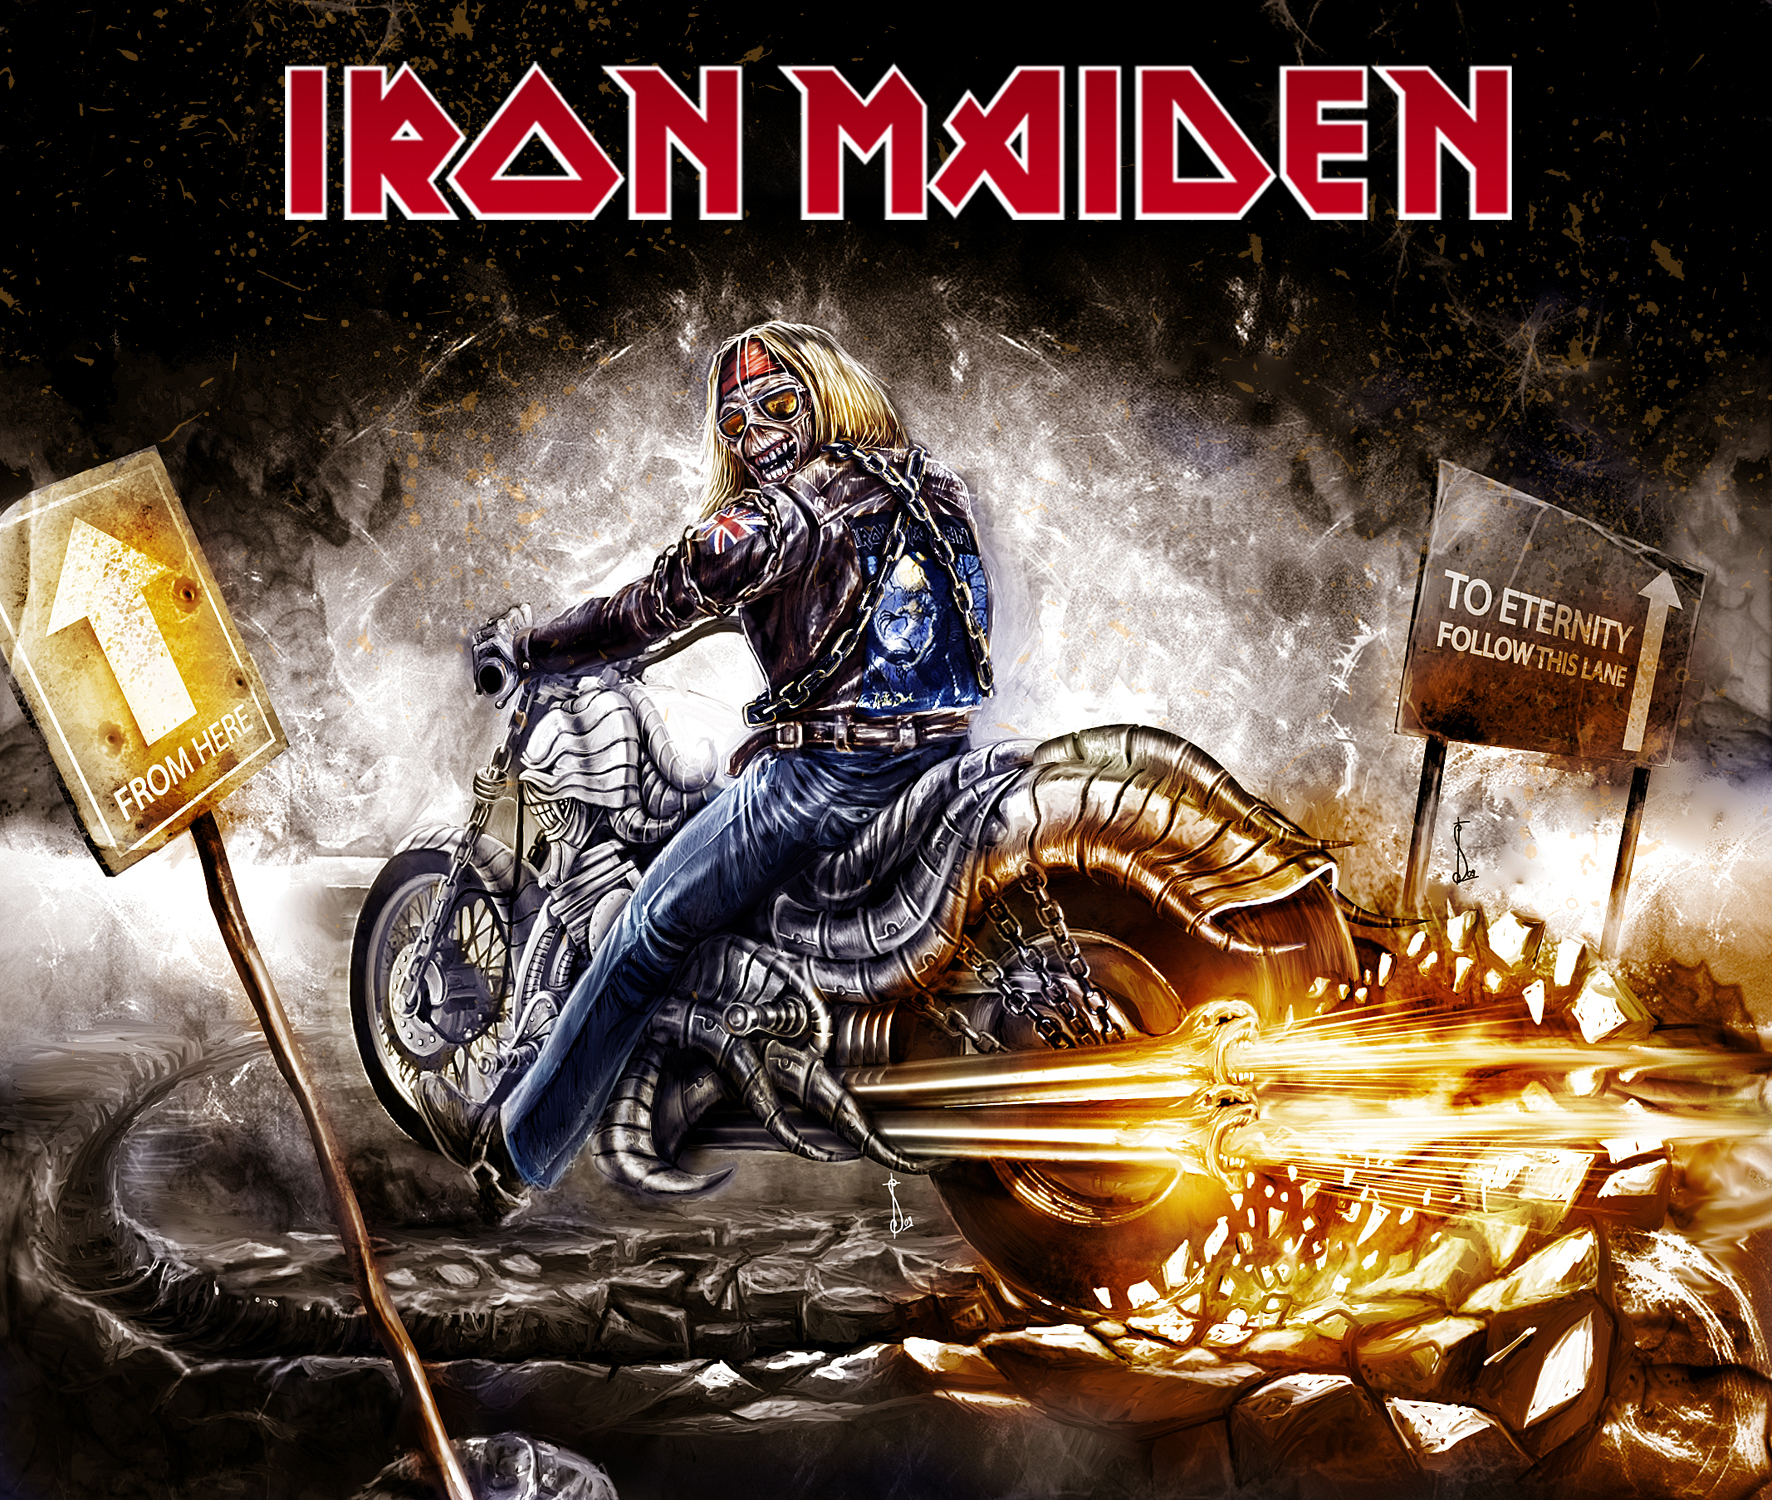 Skulls images iron maiden HD wallpaper and background photos 36389945 1772x1500